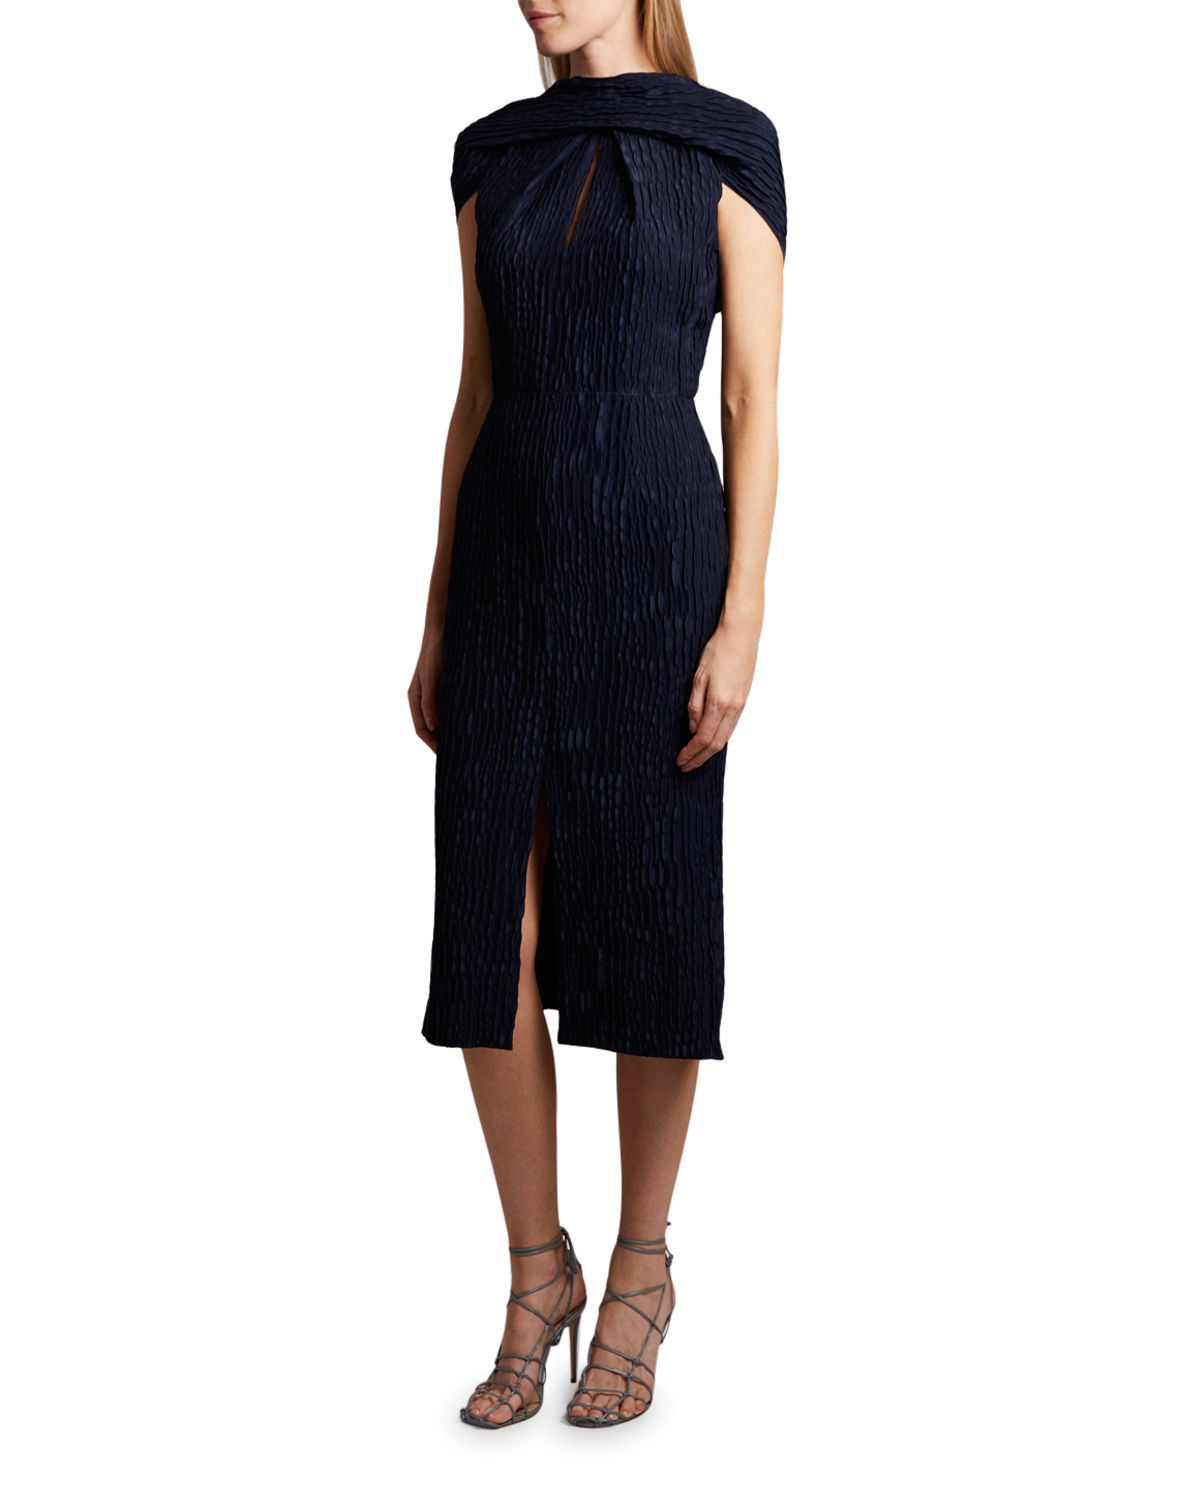 Roland Mouret BELEM DRESS SILK JACQUARD HIGH NECK DRESS